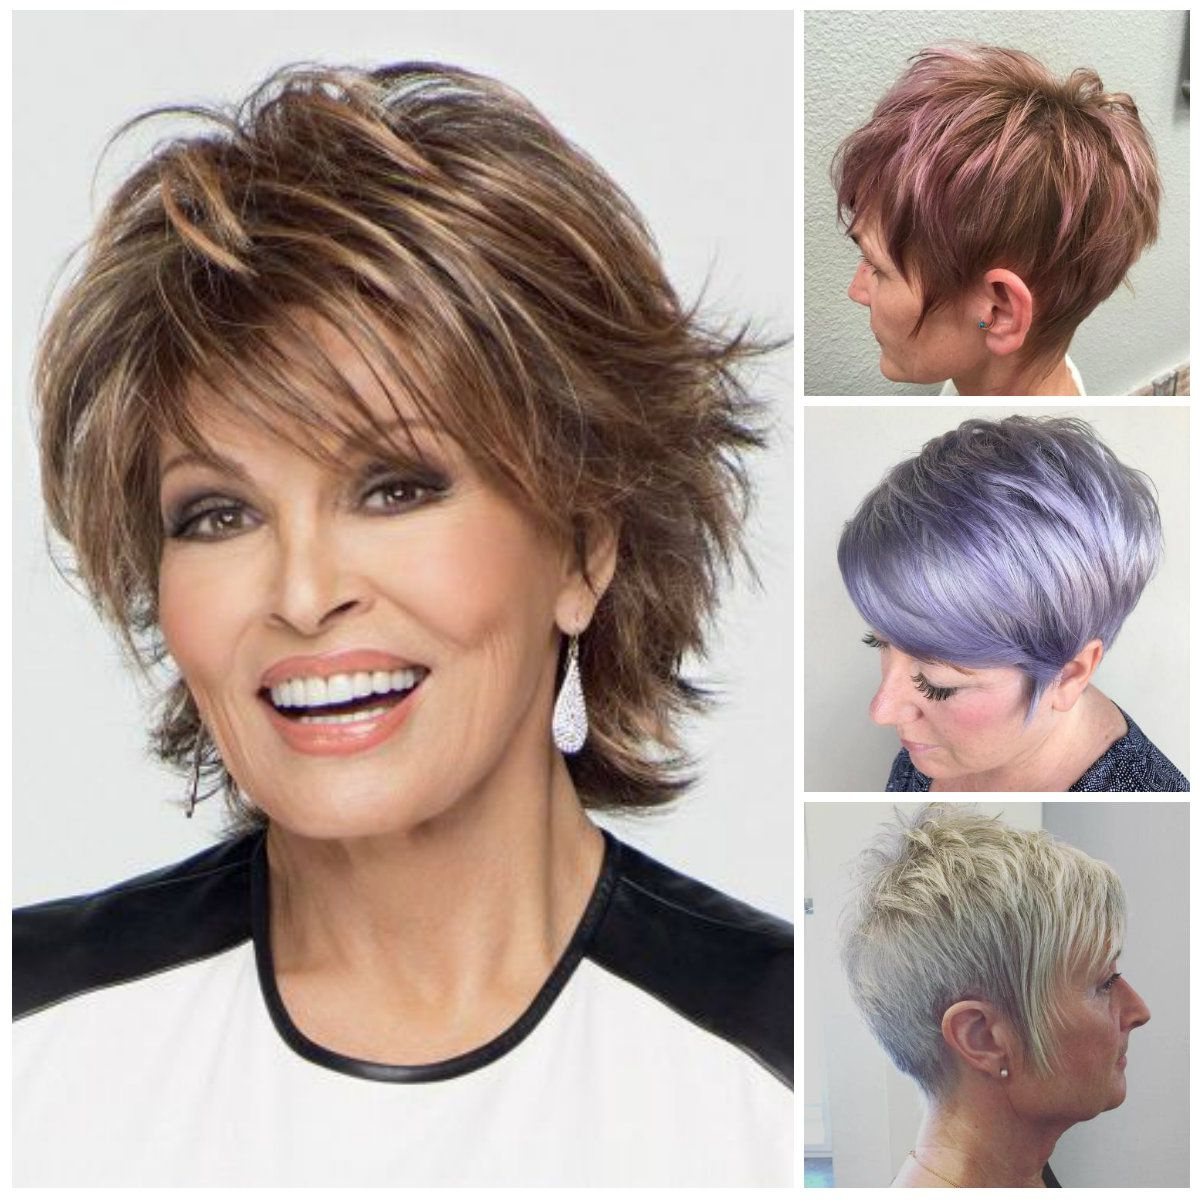 2019 Short Hairstyles For Over 60 Years Old With Glasses Awesome Intended For Short Hairstyles For 60 Year Old Woman (View 20 of 25)